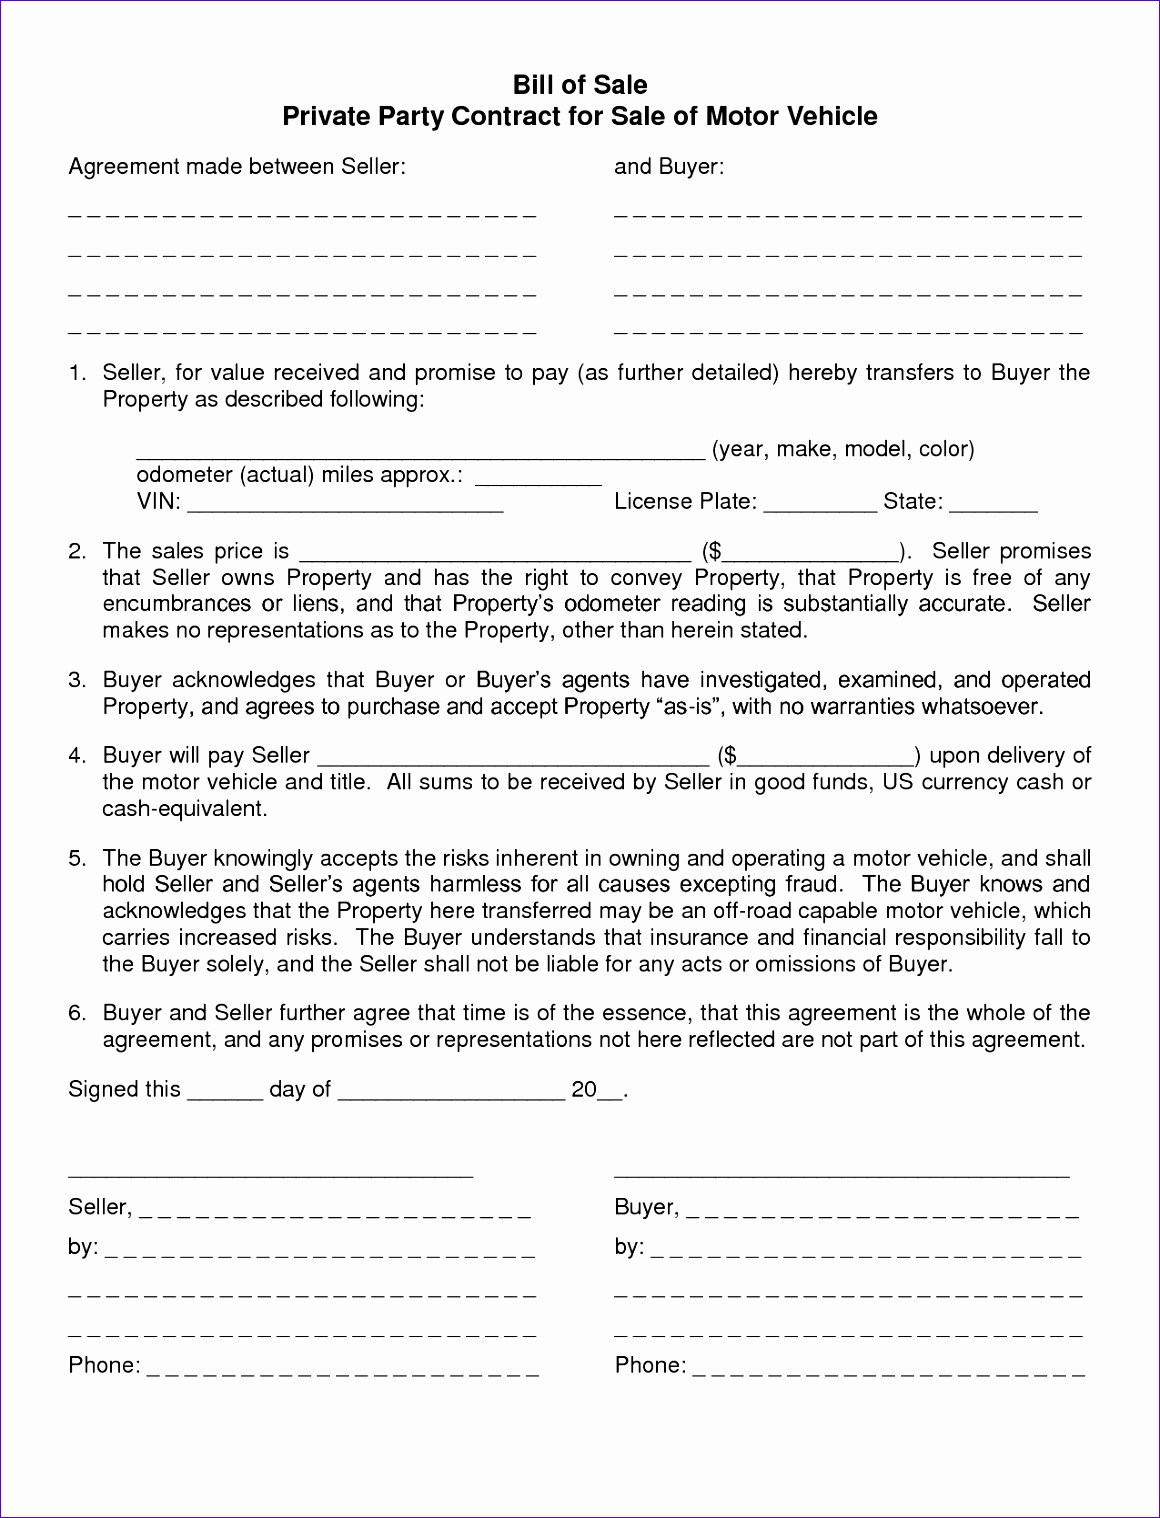 agreement template and bill of sale form for selling private vehicle 11601518